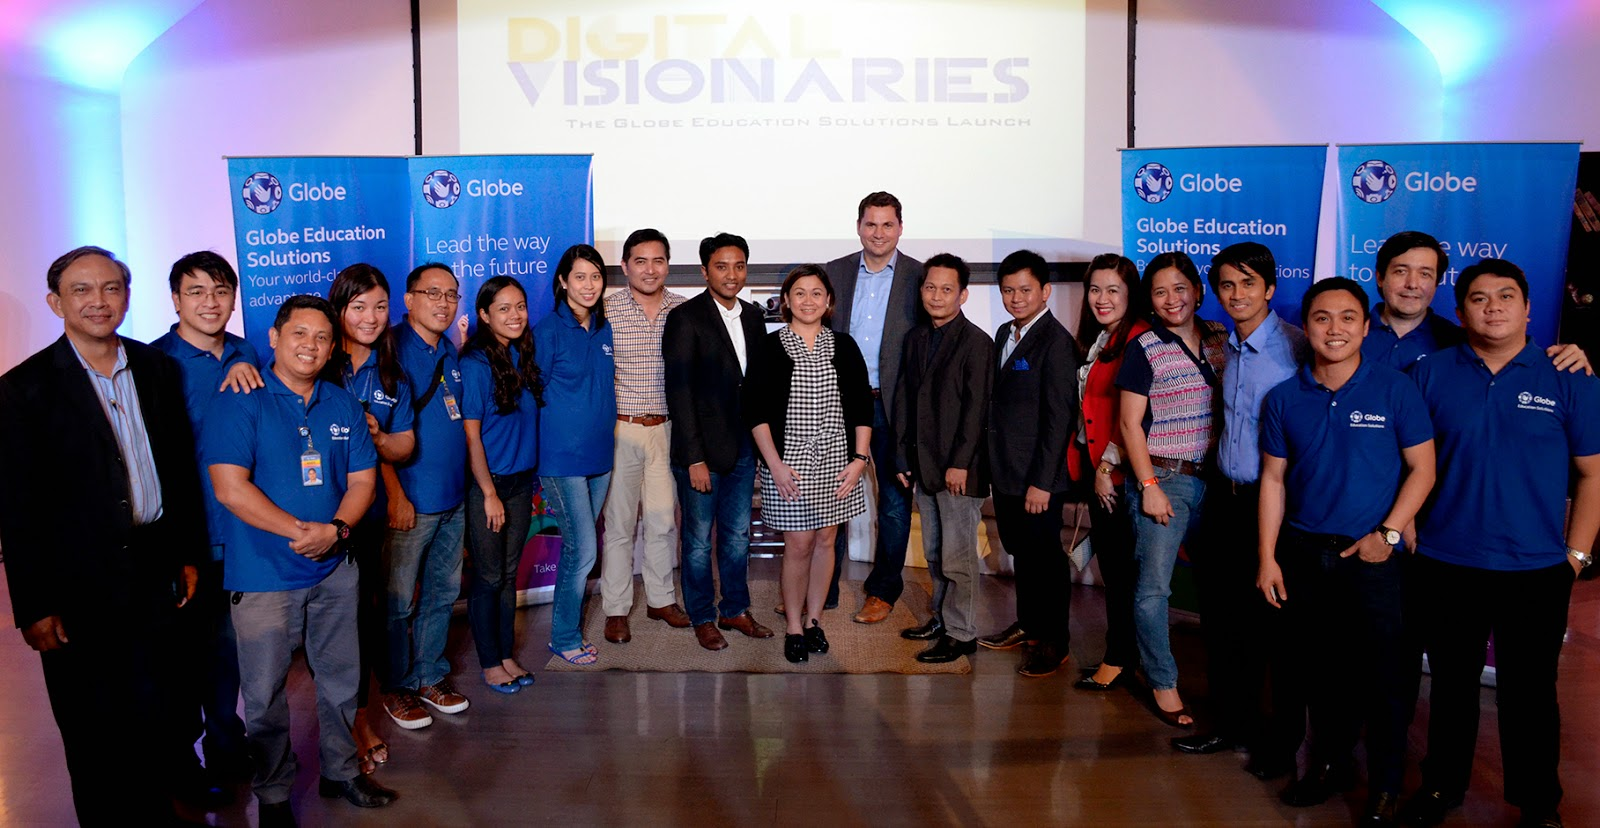 Globe myBusiness launches its education solution program called Brightspace